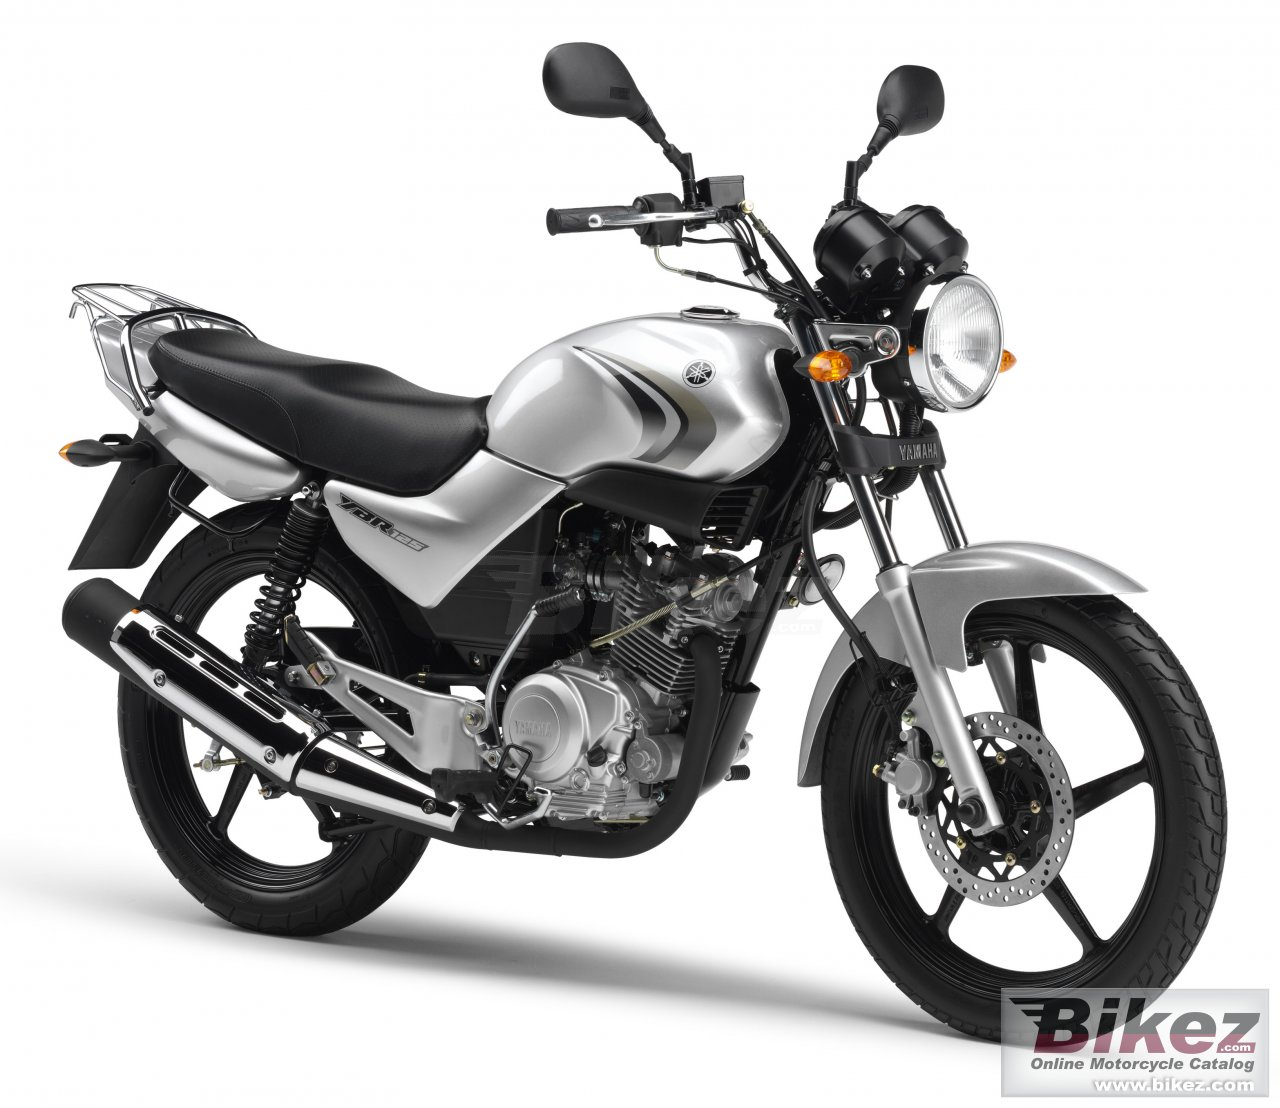 Big Yamaha ybr125 picture and wallpaper from Bikez.com